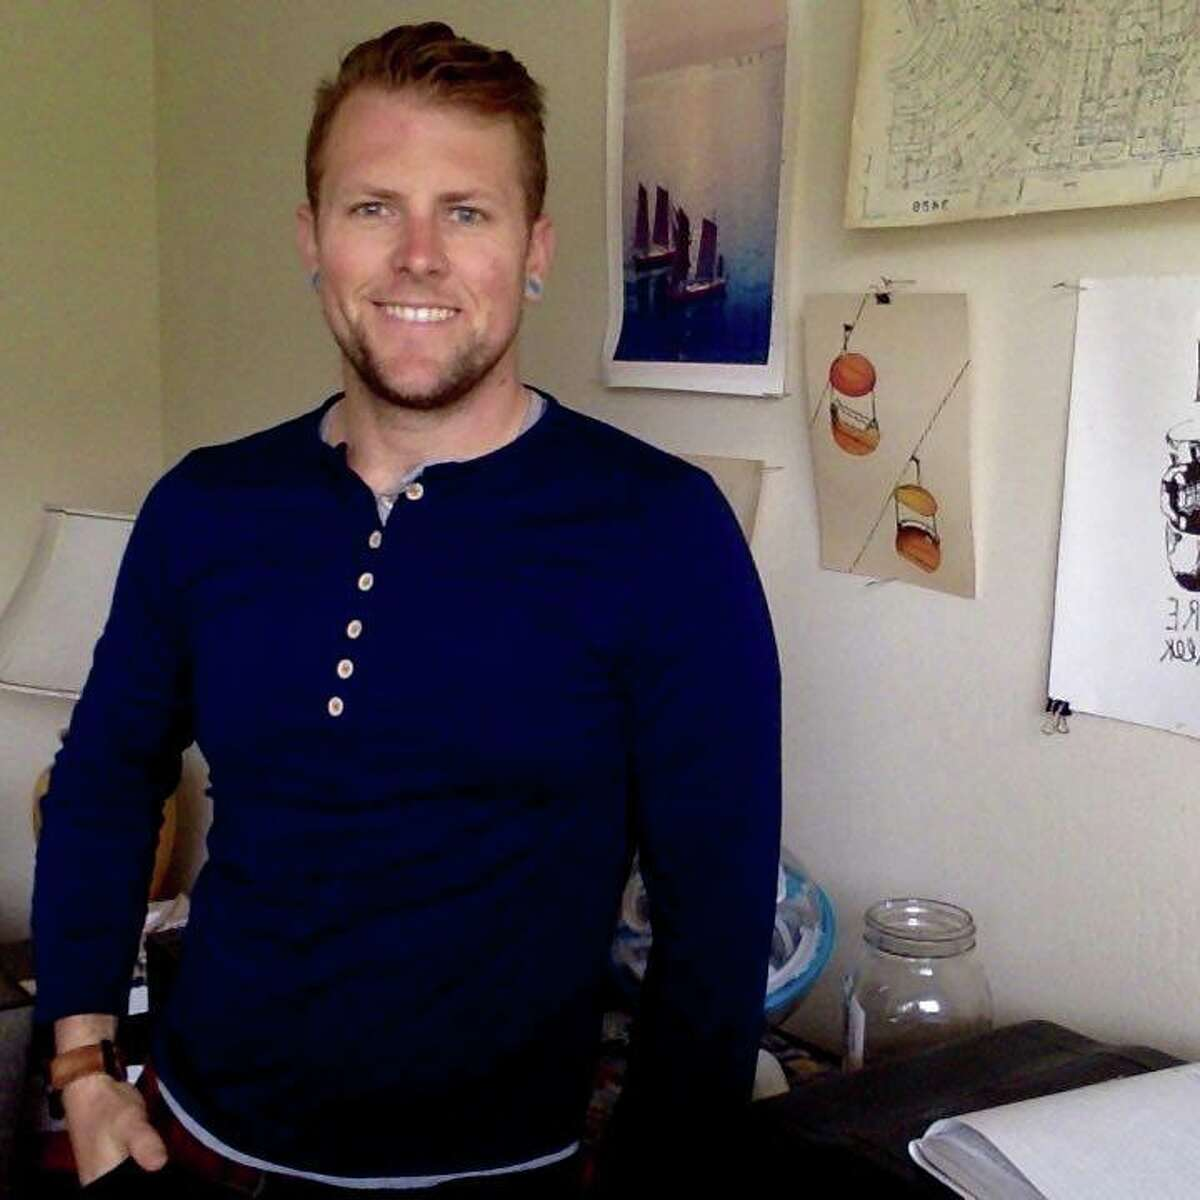 Michael Mierzejewski, 30 Profession: Owner of small marketing firm Year moved to Denver: 2018 Monthly rent: $1,600 for a one-bedroom apartment Why he moved:Mierzejewski moved to Denver to jumpstart his marketing business and invest in real estate.